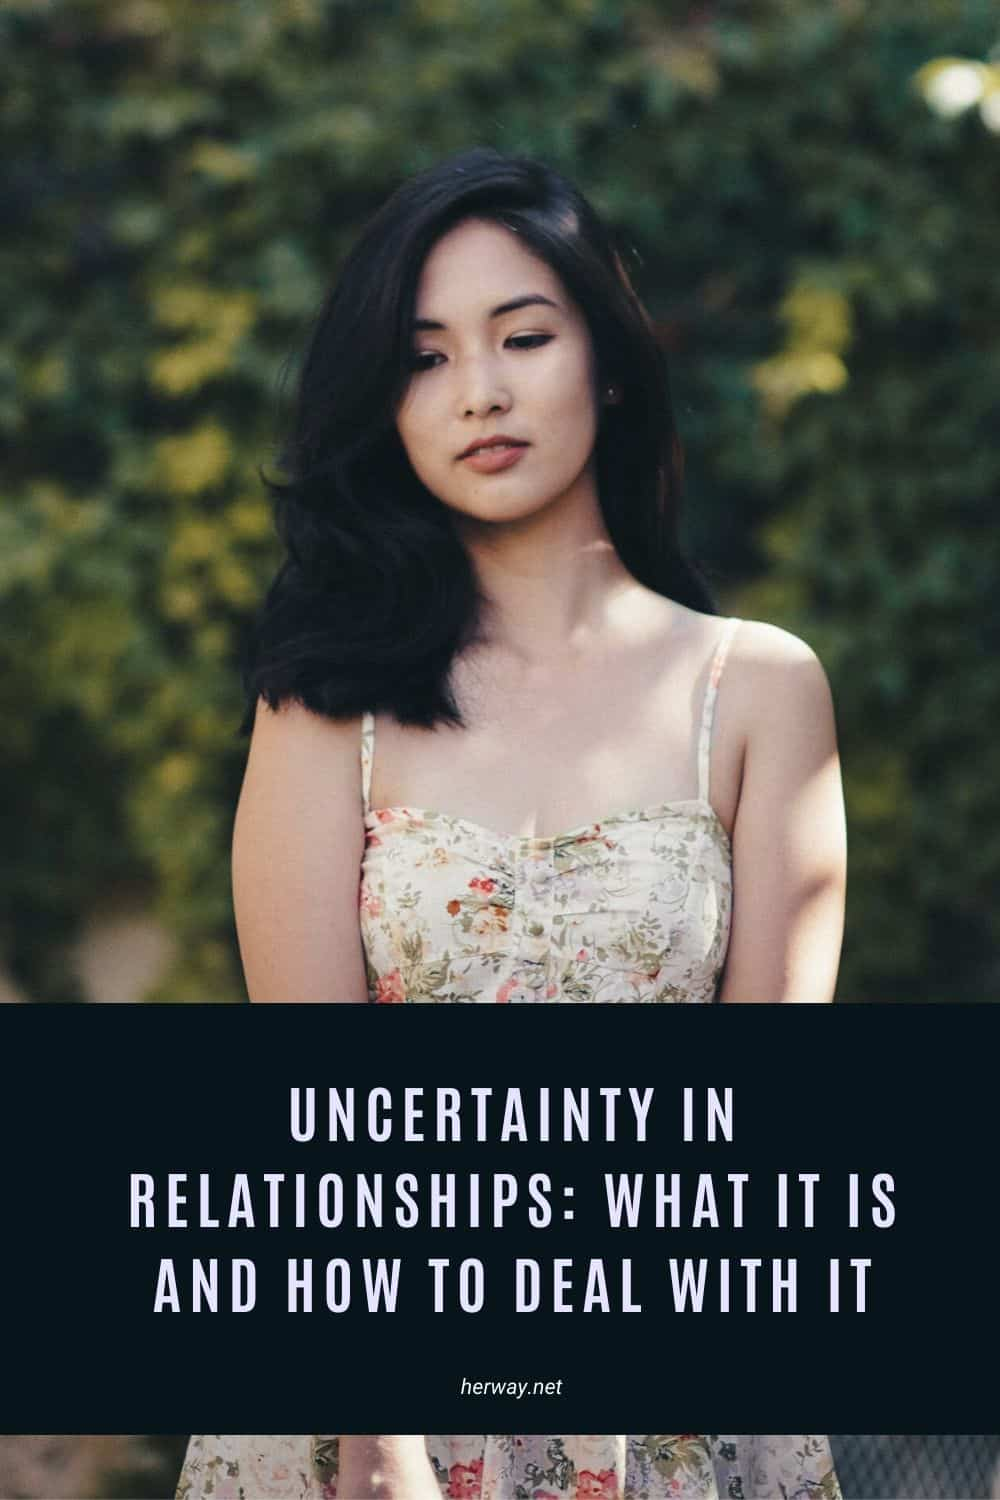 Uncertainty In Relationships: What It Is And How To Deal With It